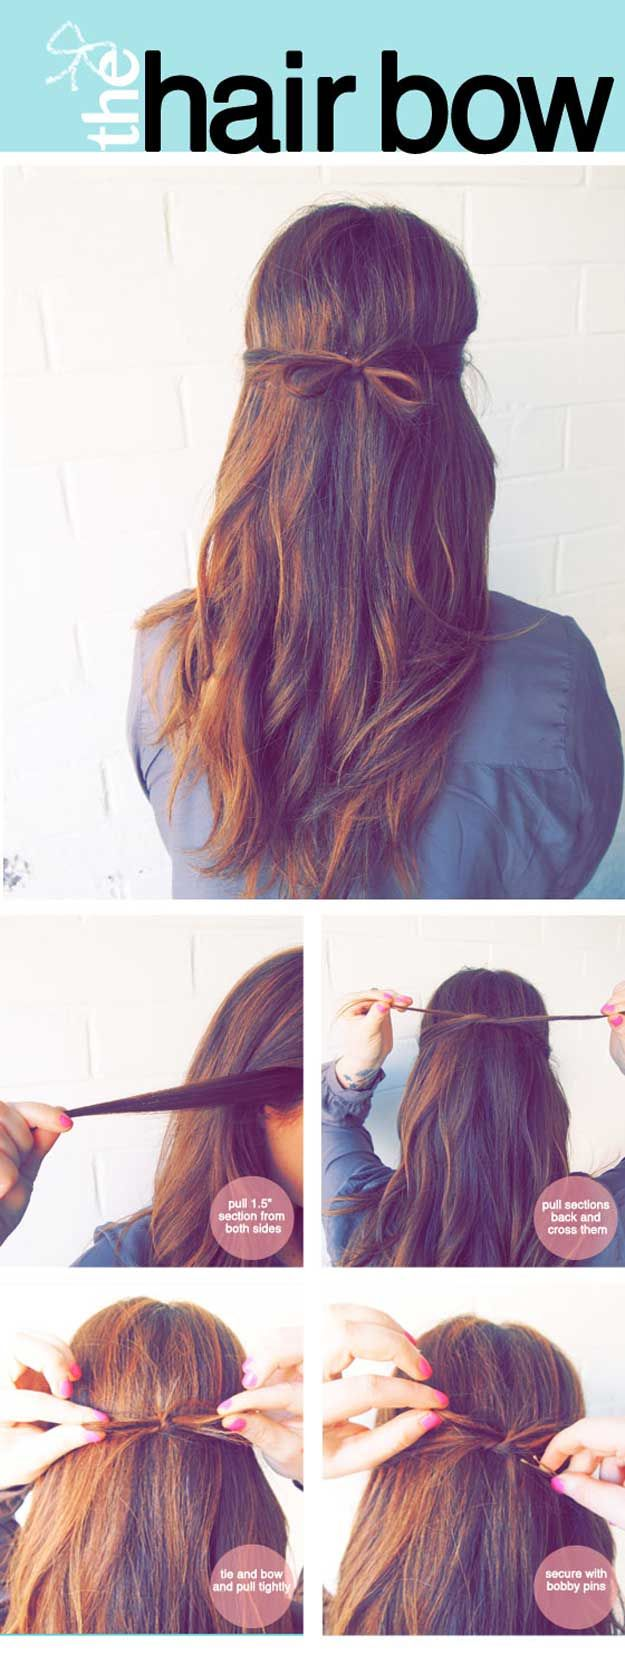 Best 5 Minute Hairstyles - The Hair Bow - Quick And Easy Hairstyles and Haircuts...